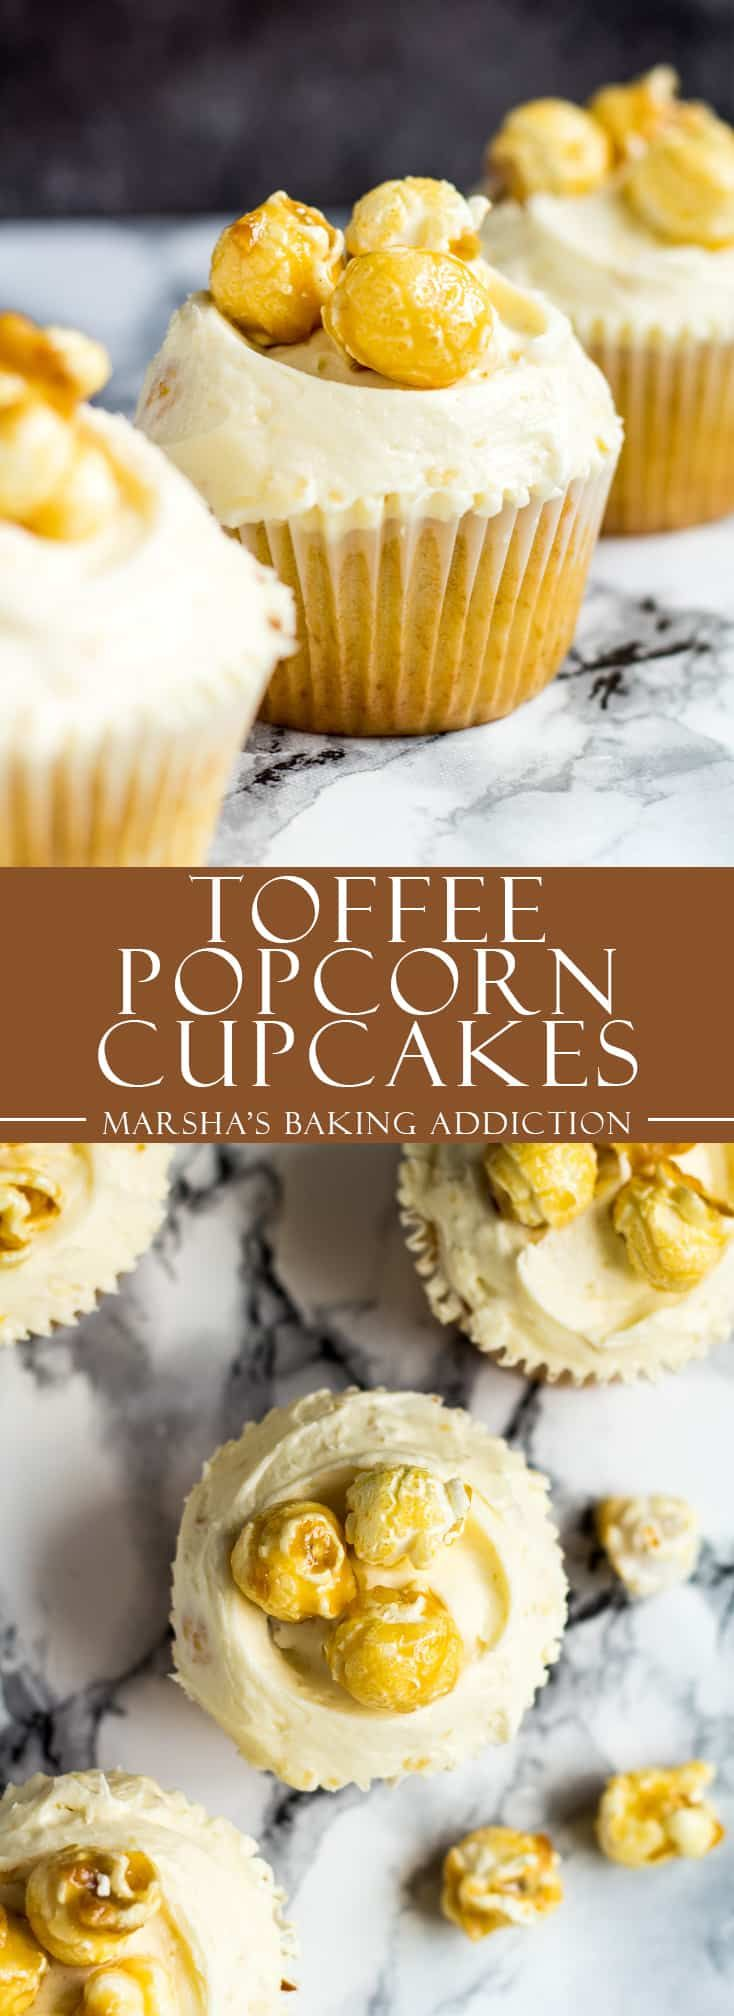 Toffee Popcorn Cupcakes - Deliciously moist and fluffy vanilla cupcakes stuffed full of toffee popcorn, and topped with a creamy buttercream frosting with popcorn bits! | marshasbakingaddiction.com | @marshasbakeblog #toffee #popcorn #cupcakes